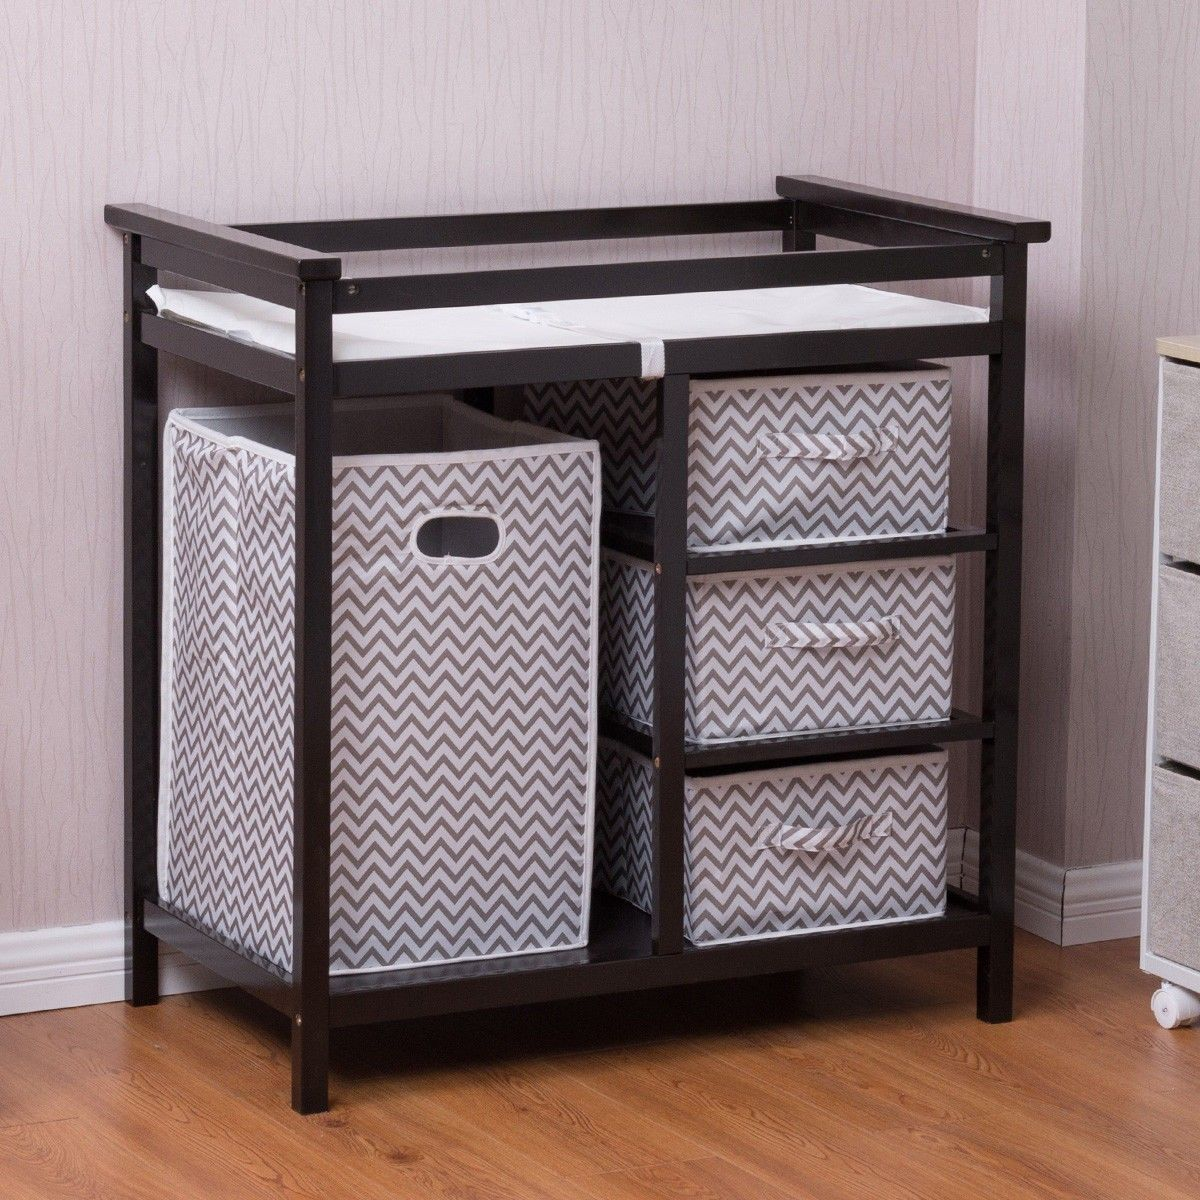 Black baby diaper storage changing table w baskets furniture